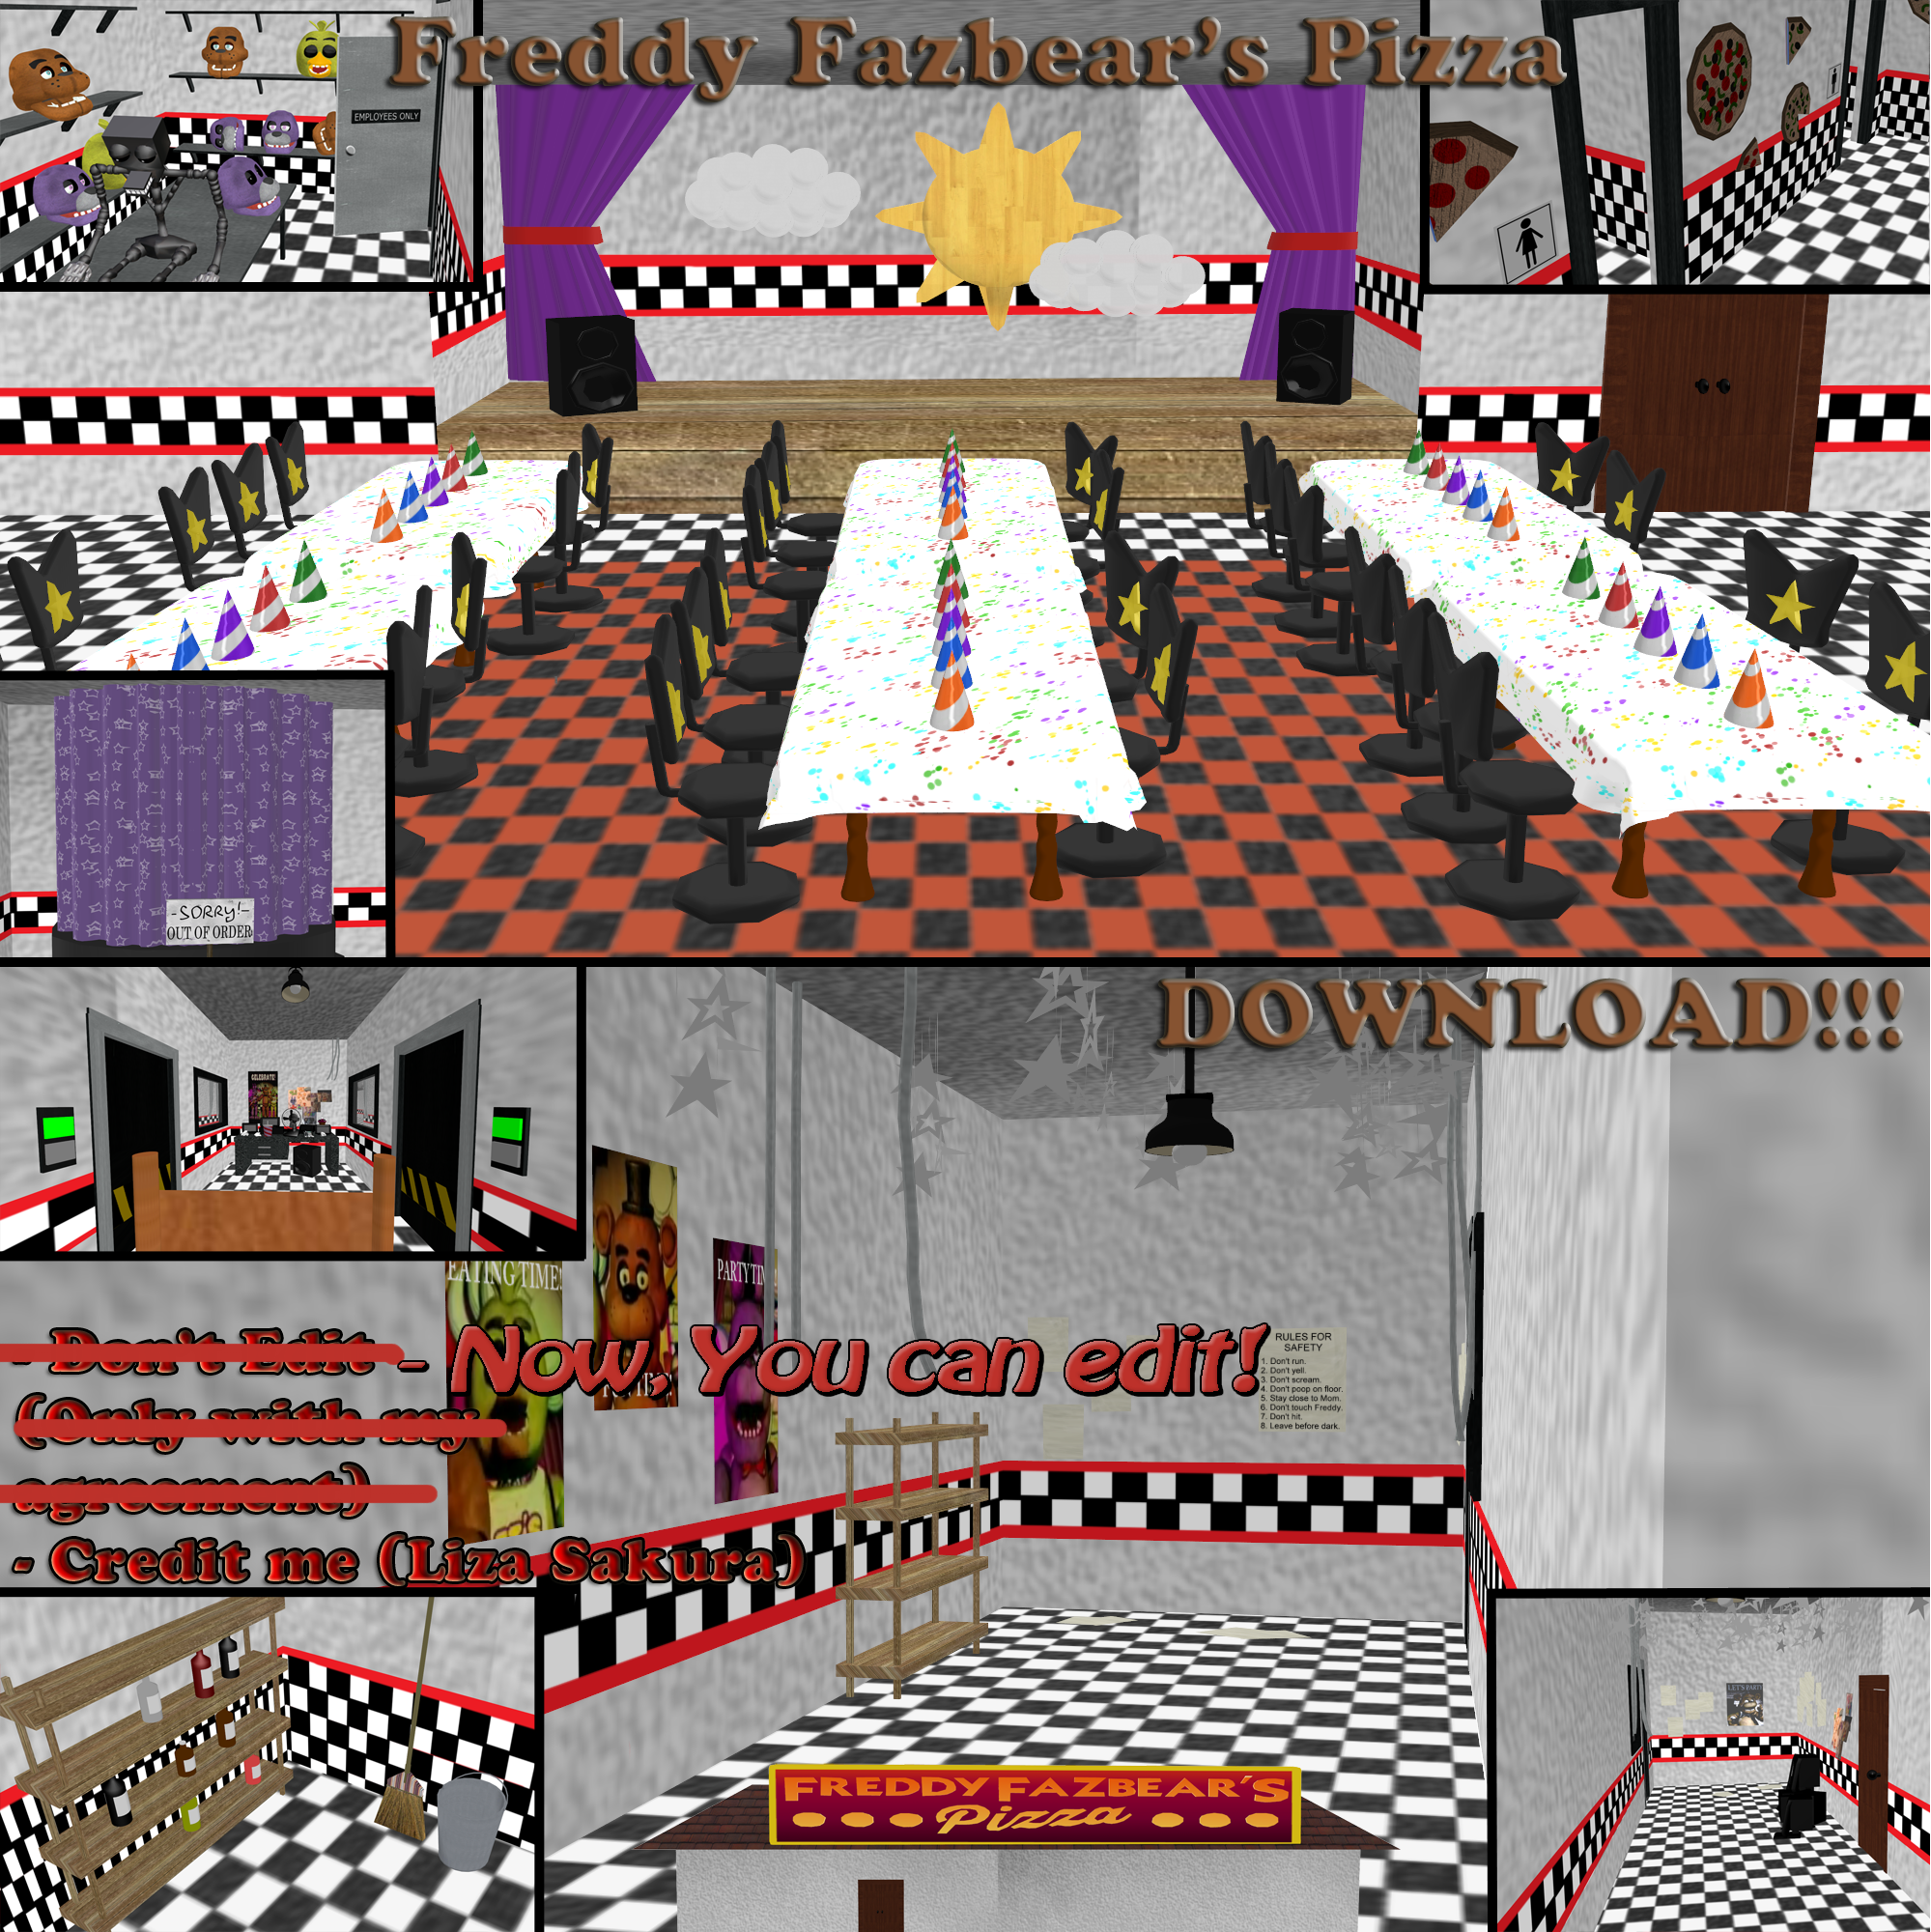 MMD] Freddy Fazbear's Pizza Stage  DOWNLOAD!!! by LizaSakura